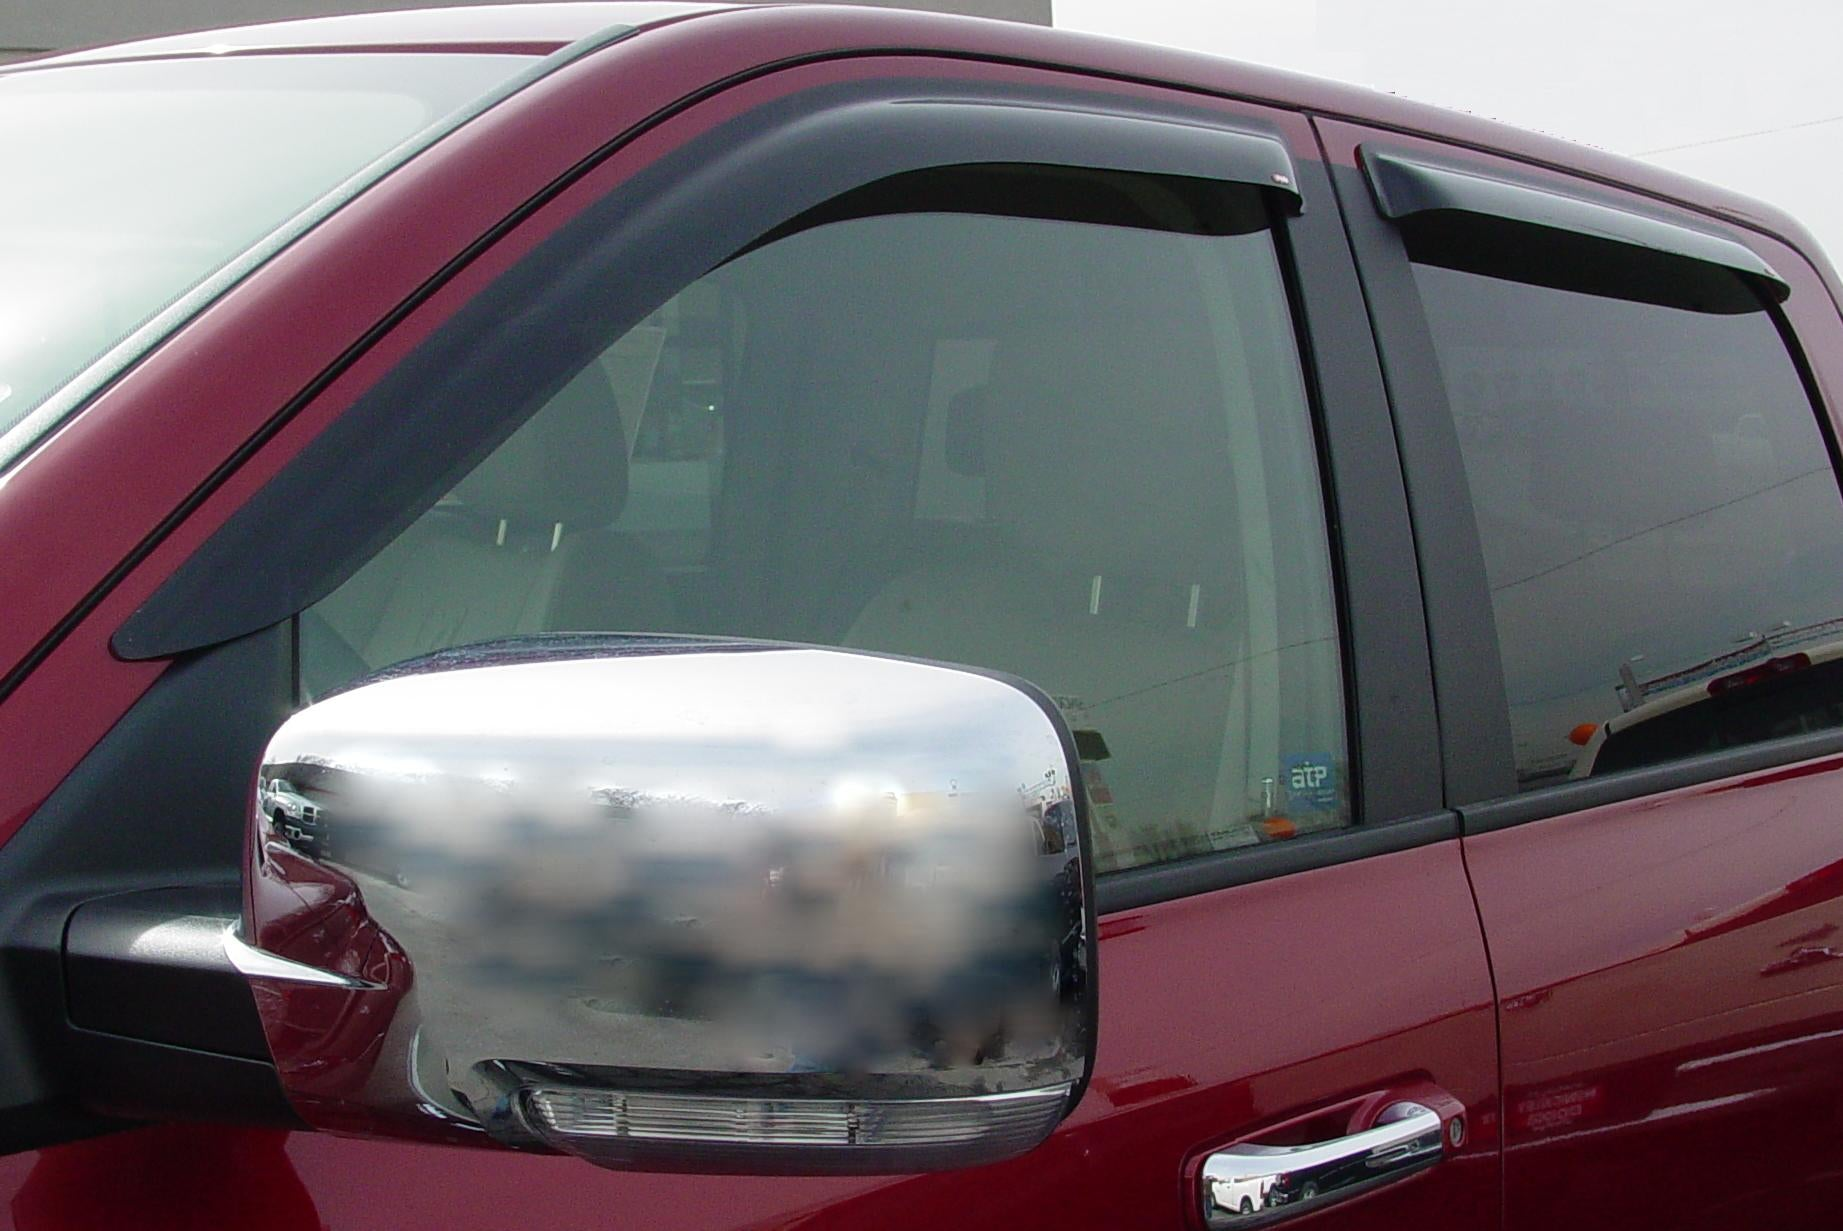 2005 Cadillac Escalade Slim Wind Deflectors